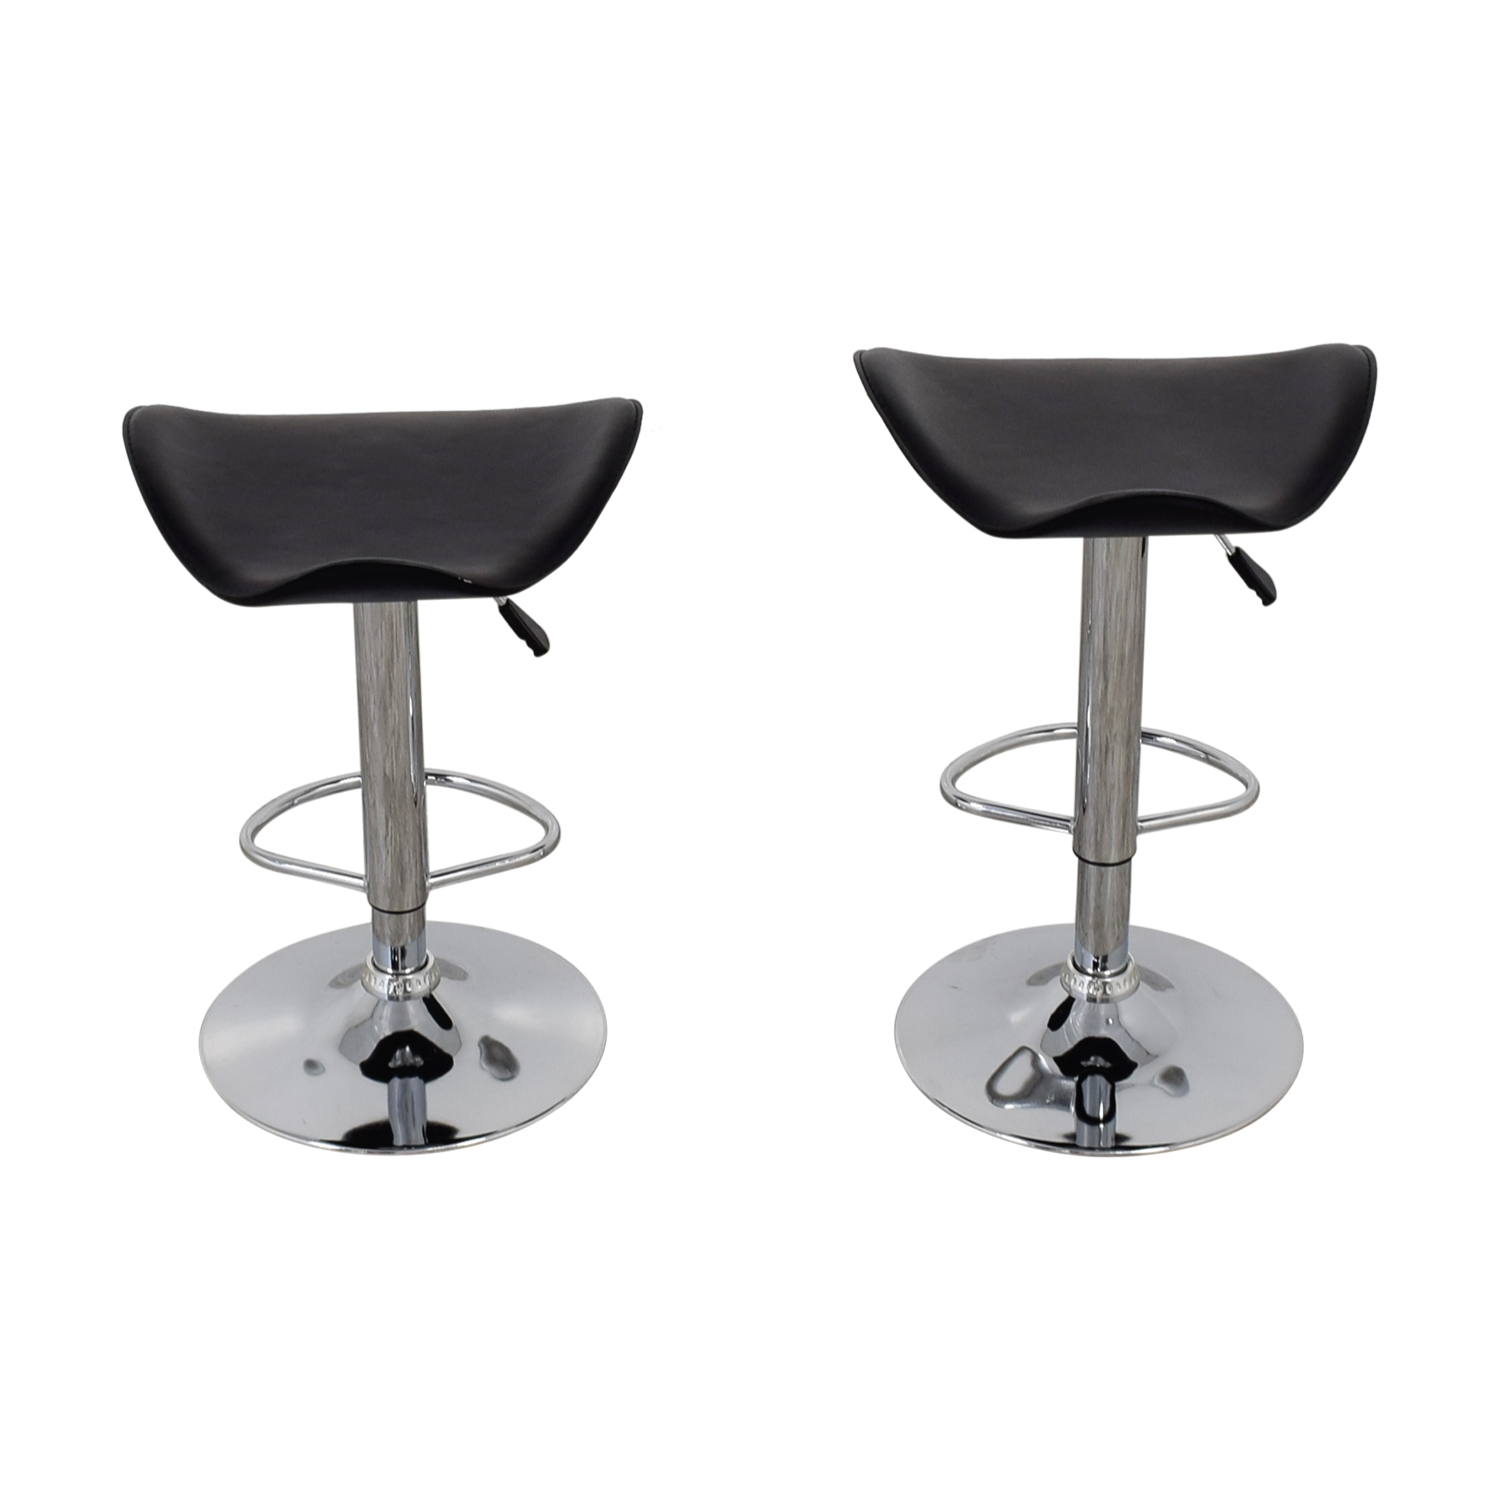 Swell 71 Off Black Leather And Chrome Adjustable Bar Stools Chairs Andrewgaddart Wooden Chair Designs For Living Room Andrewgaddartcom